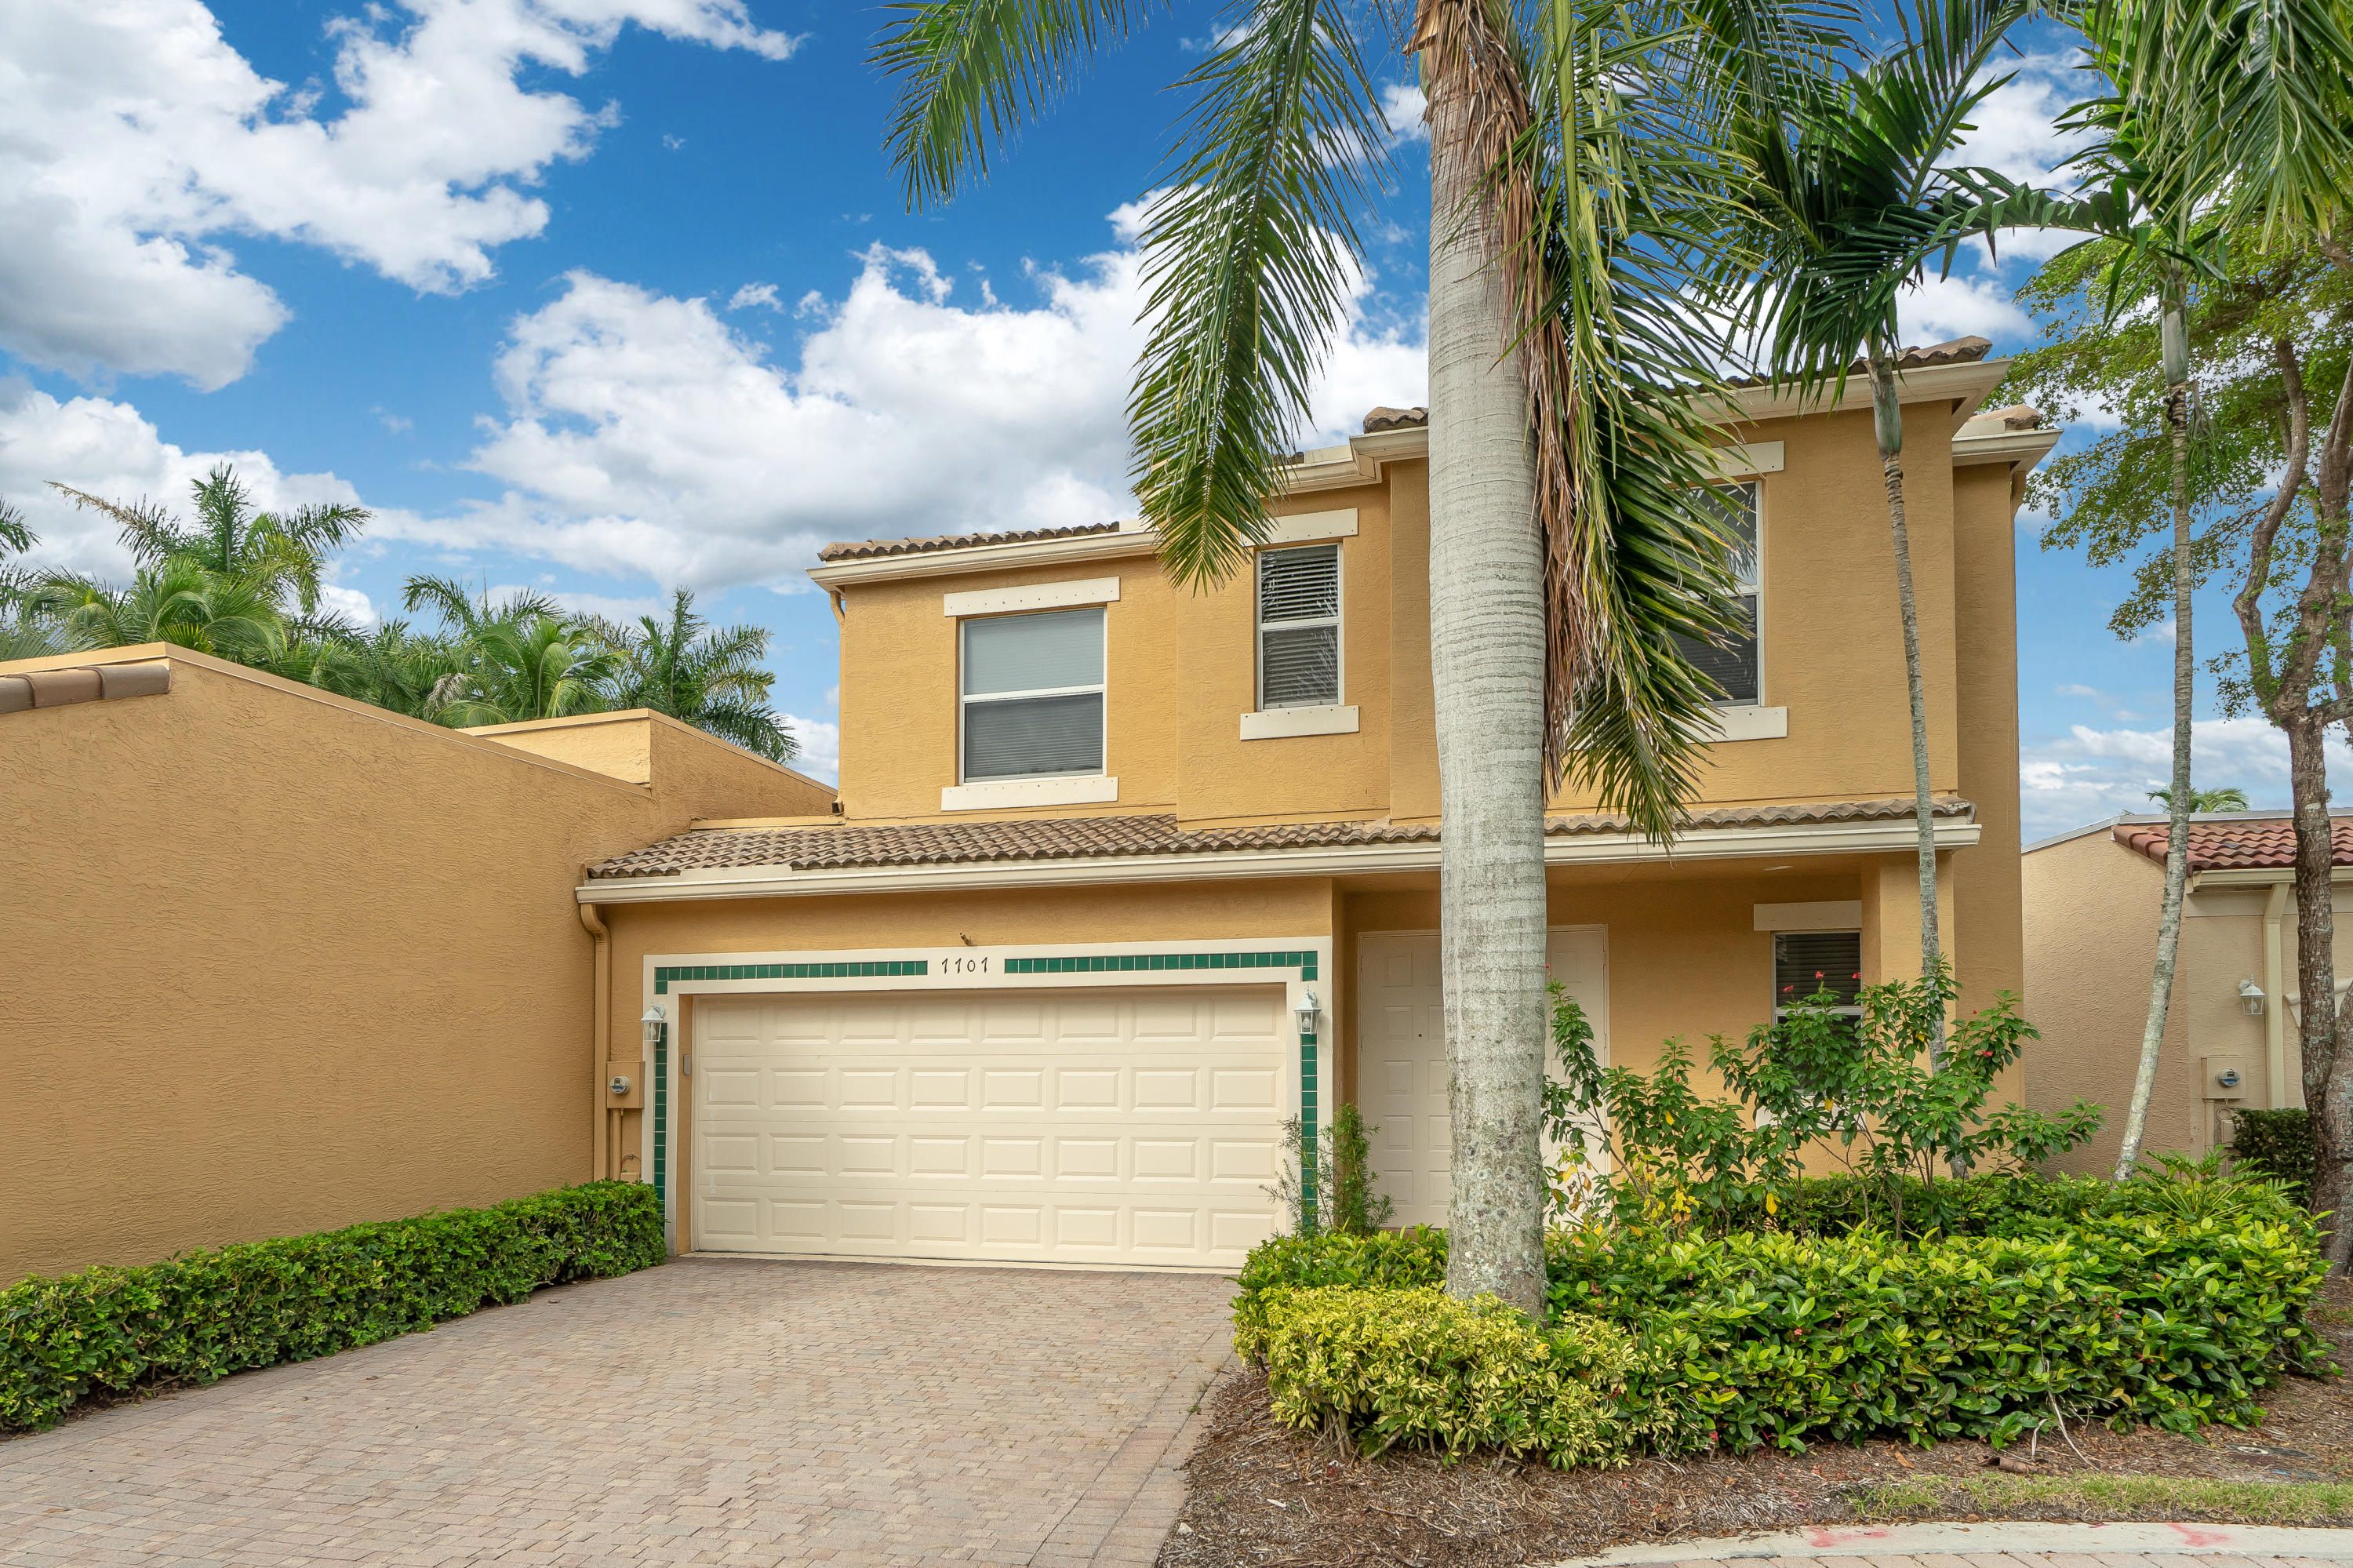 Photo of 7707 Azalea Court, West Palm Beach, FL 33412